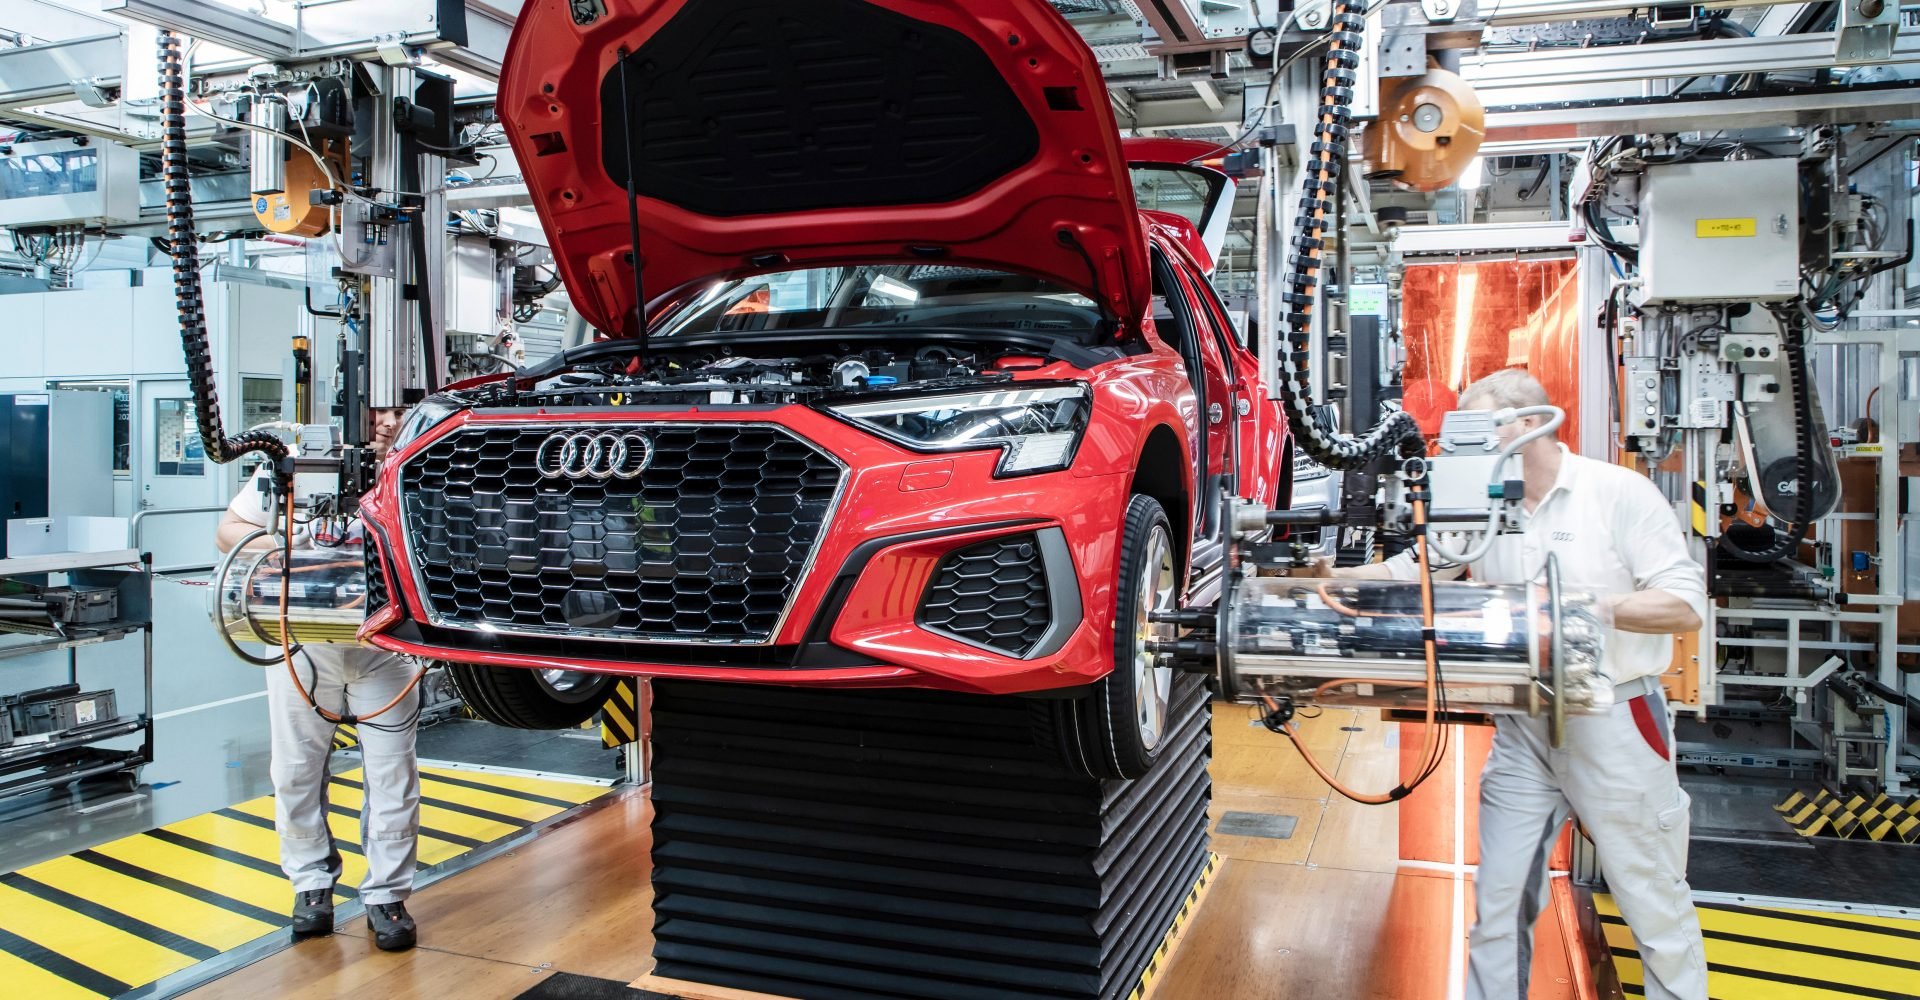 Audi to make all car plants carbon neutral by 2025